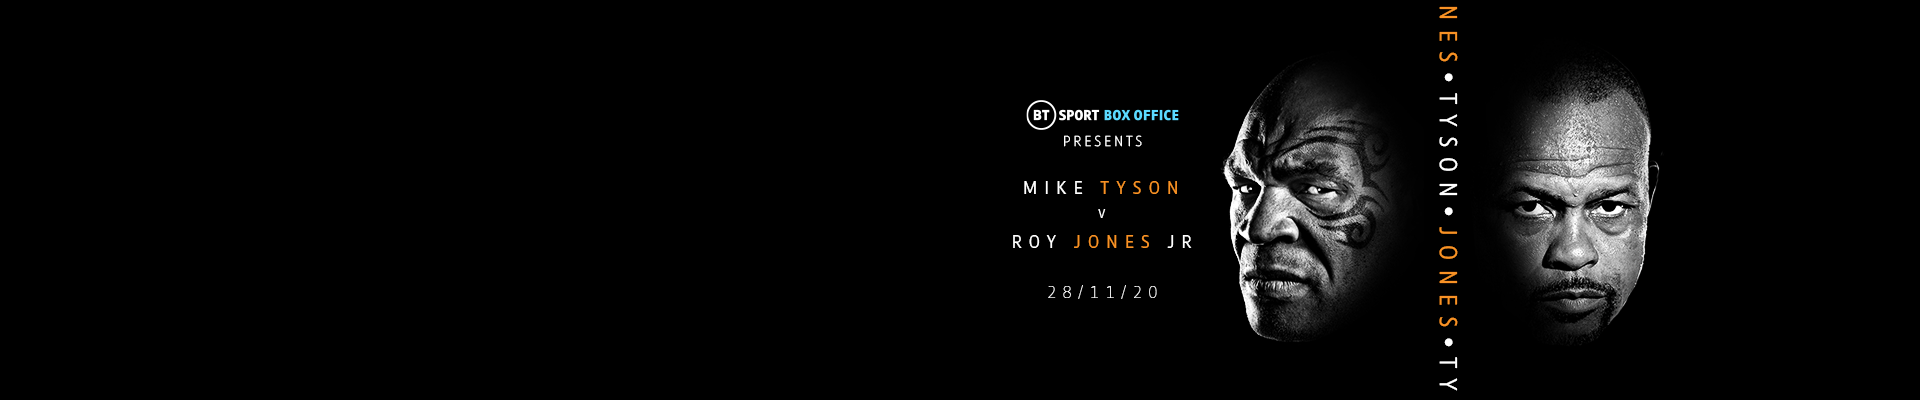 Watch Mike Tyson vs Roy Jones Jr exclusively live on BT Sport Box Office